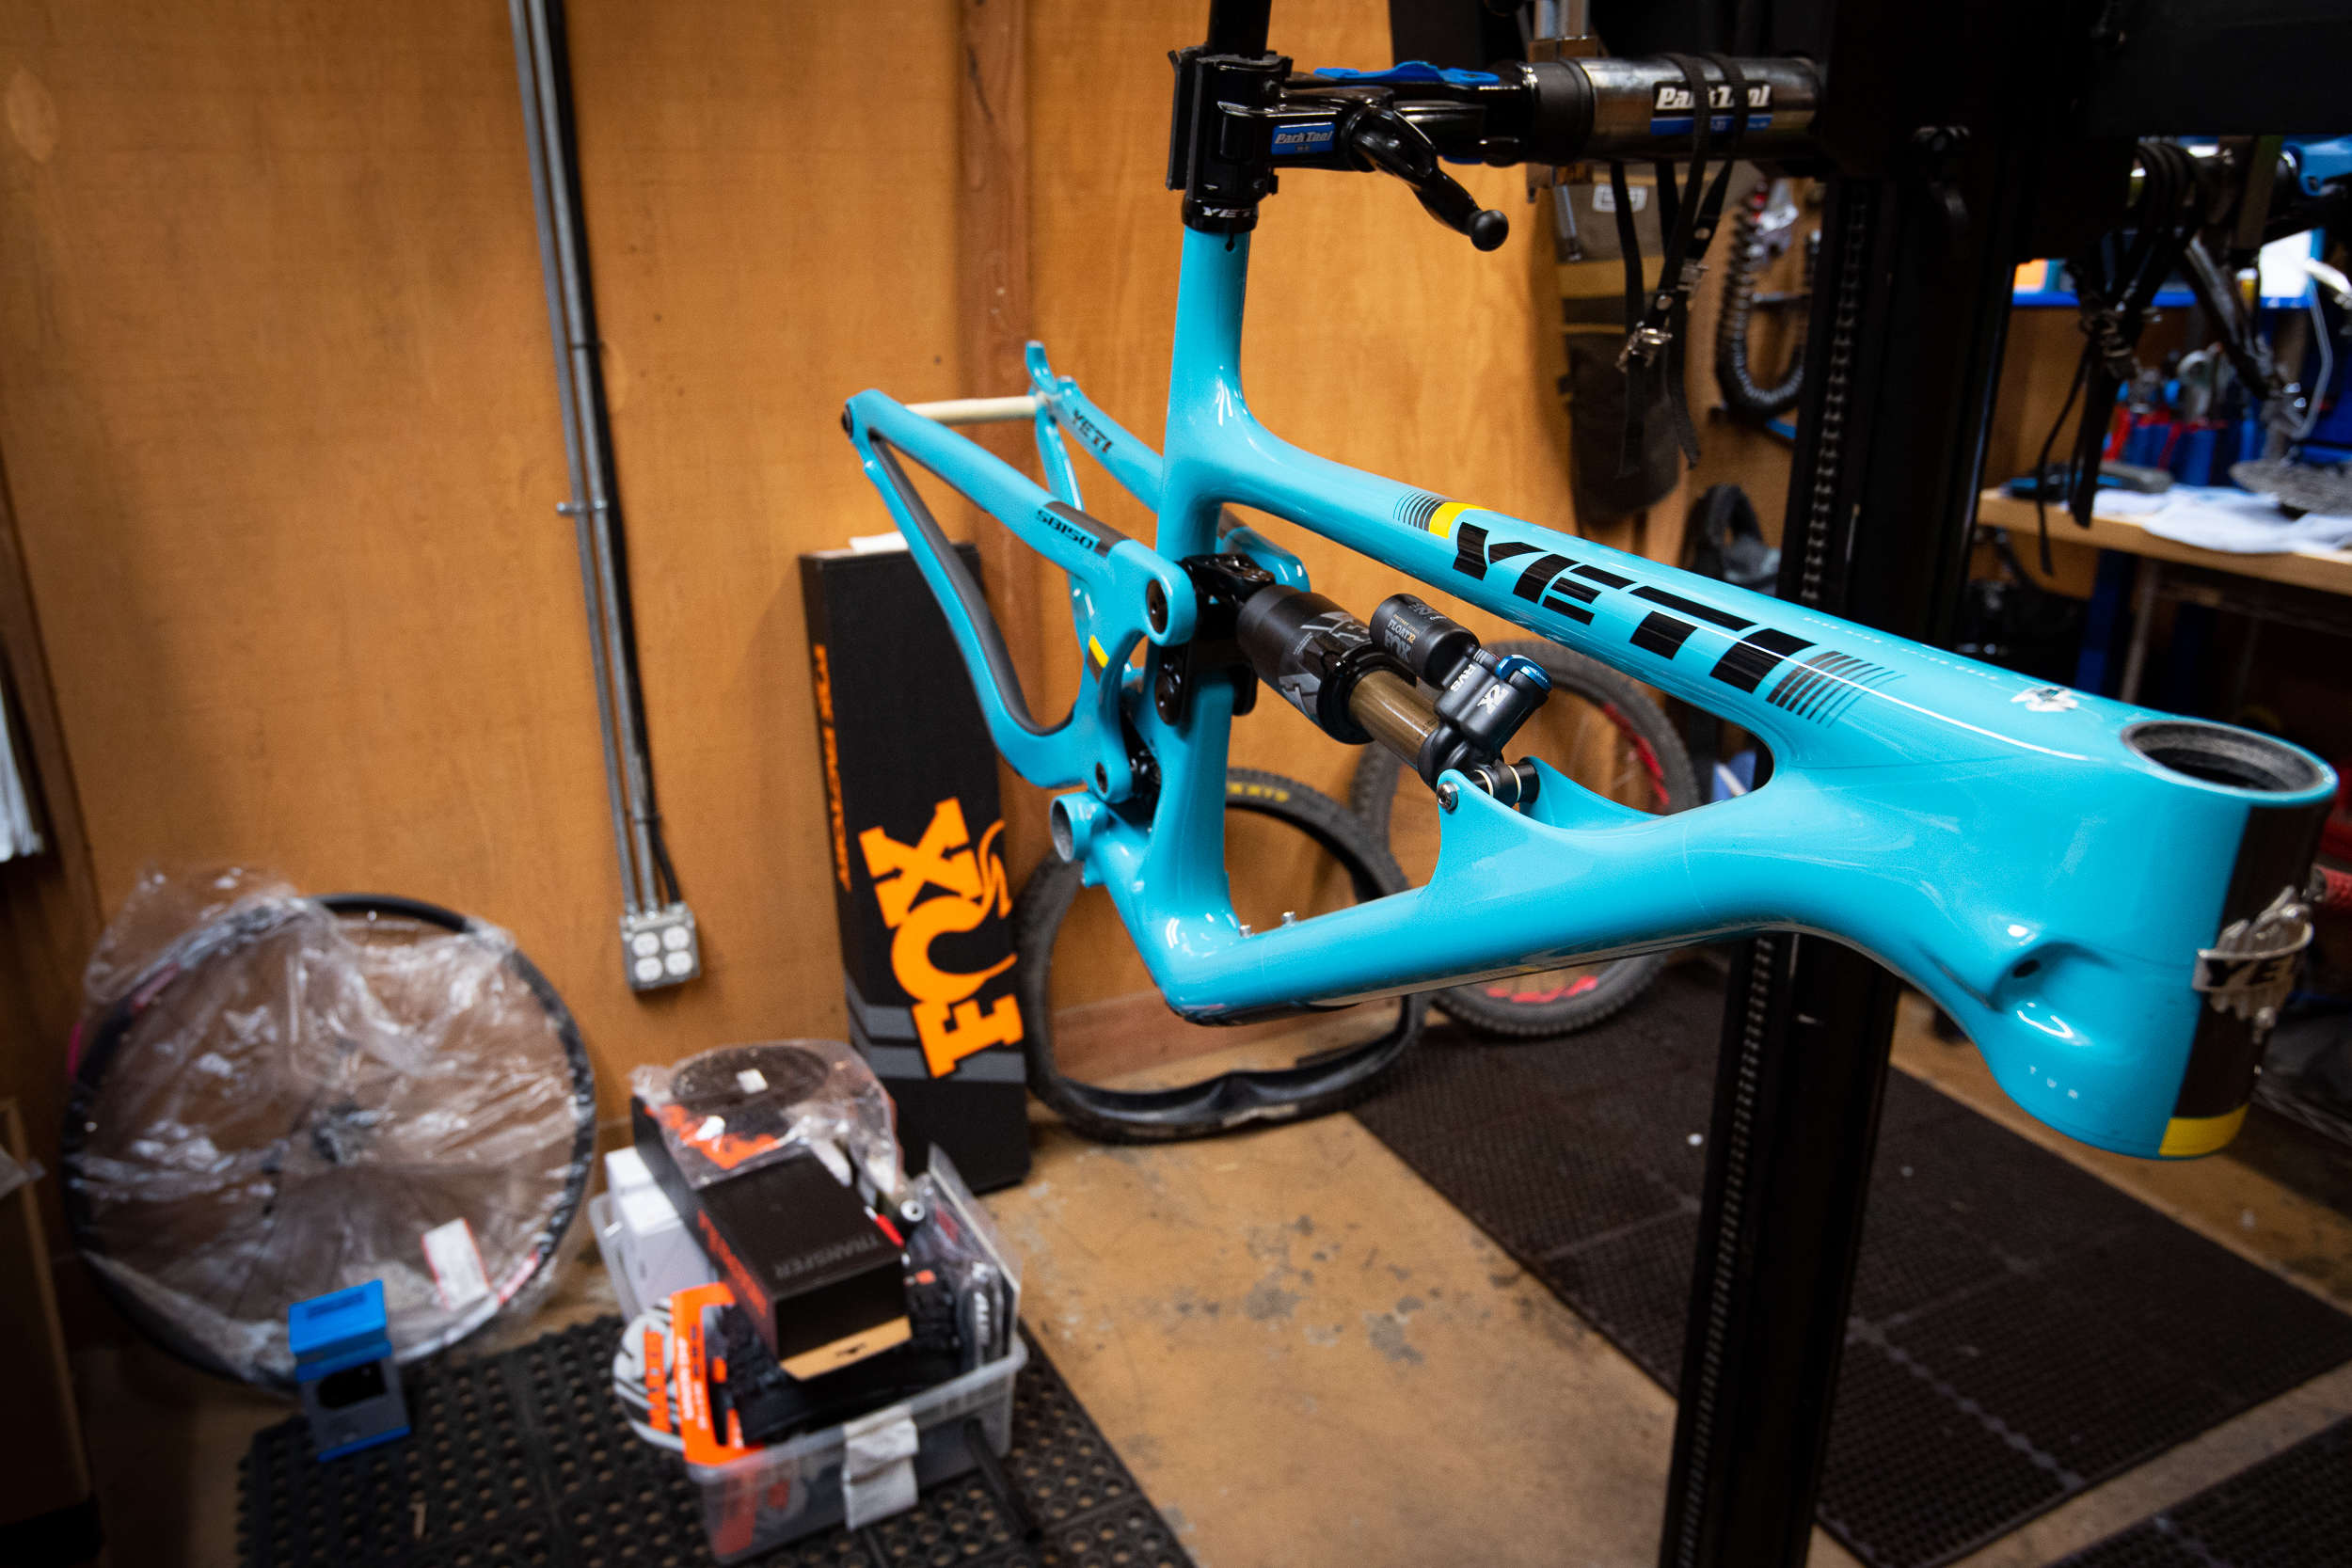 Custom bike yeti sb150 being built